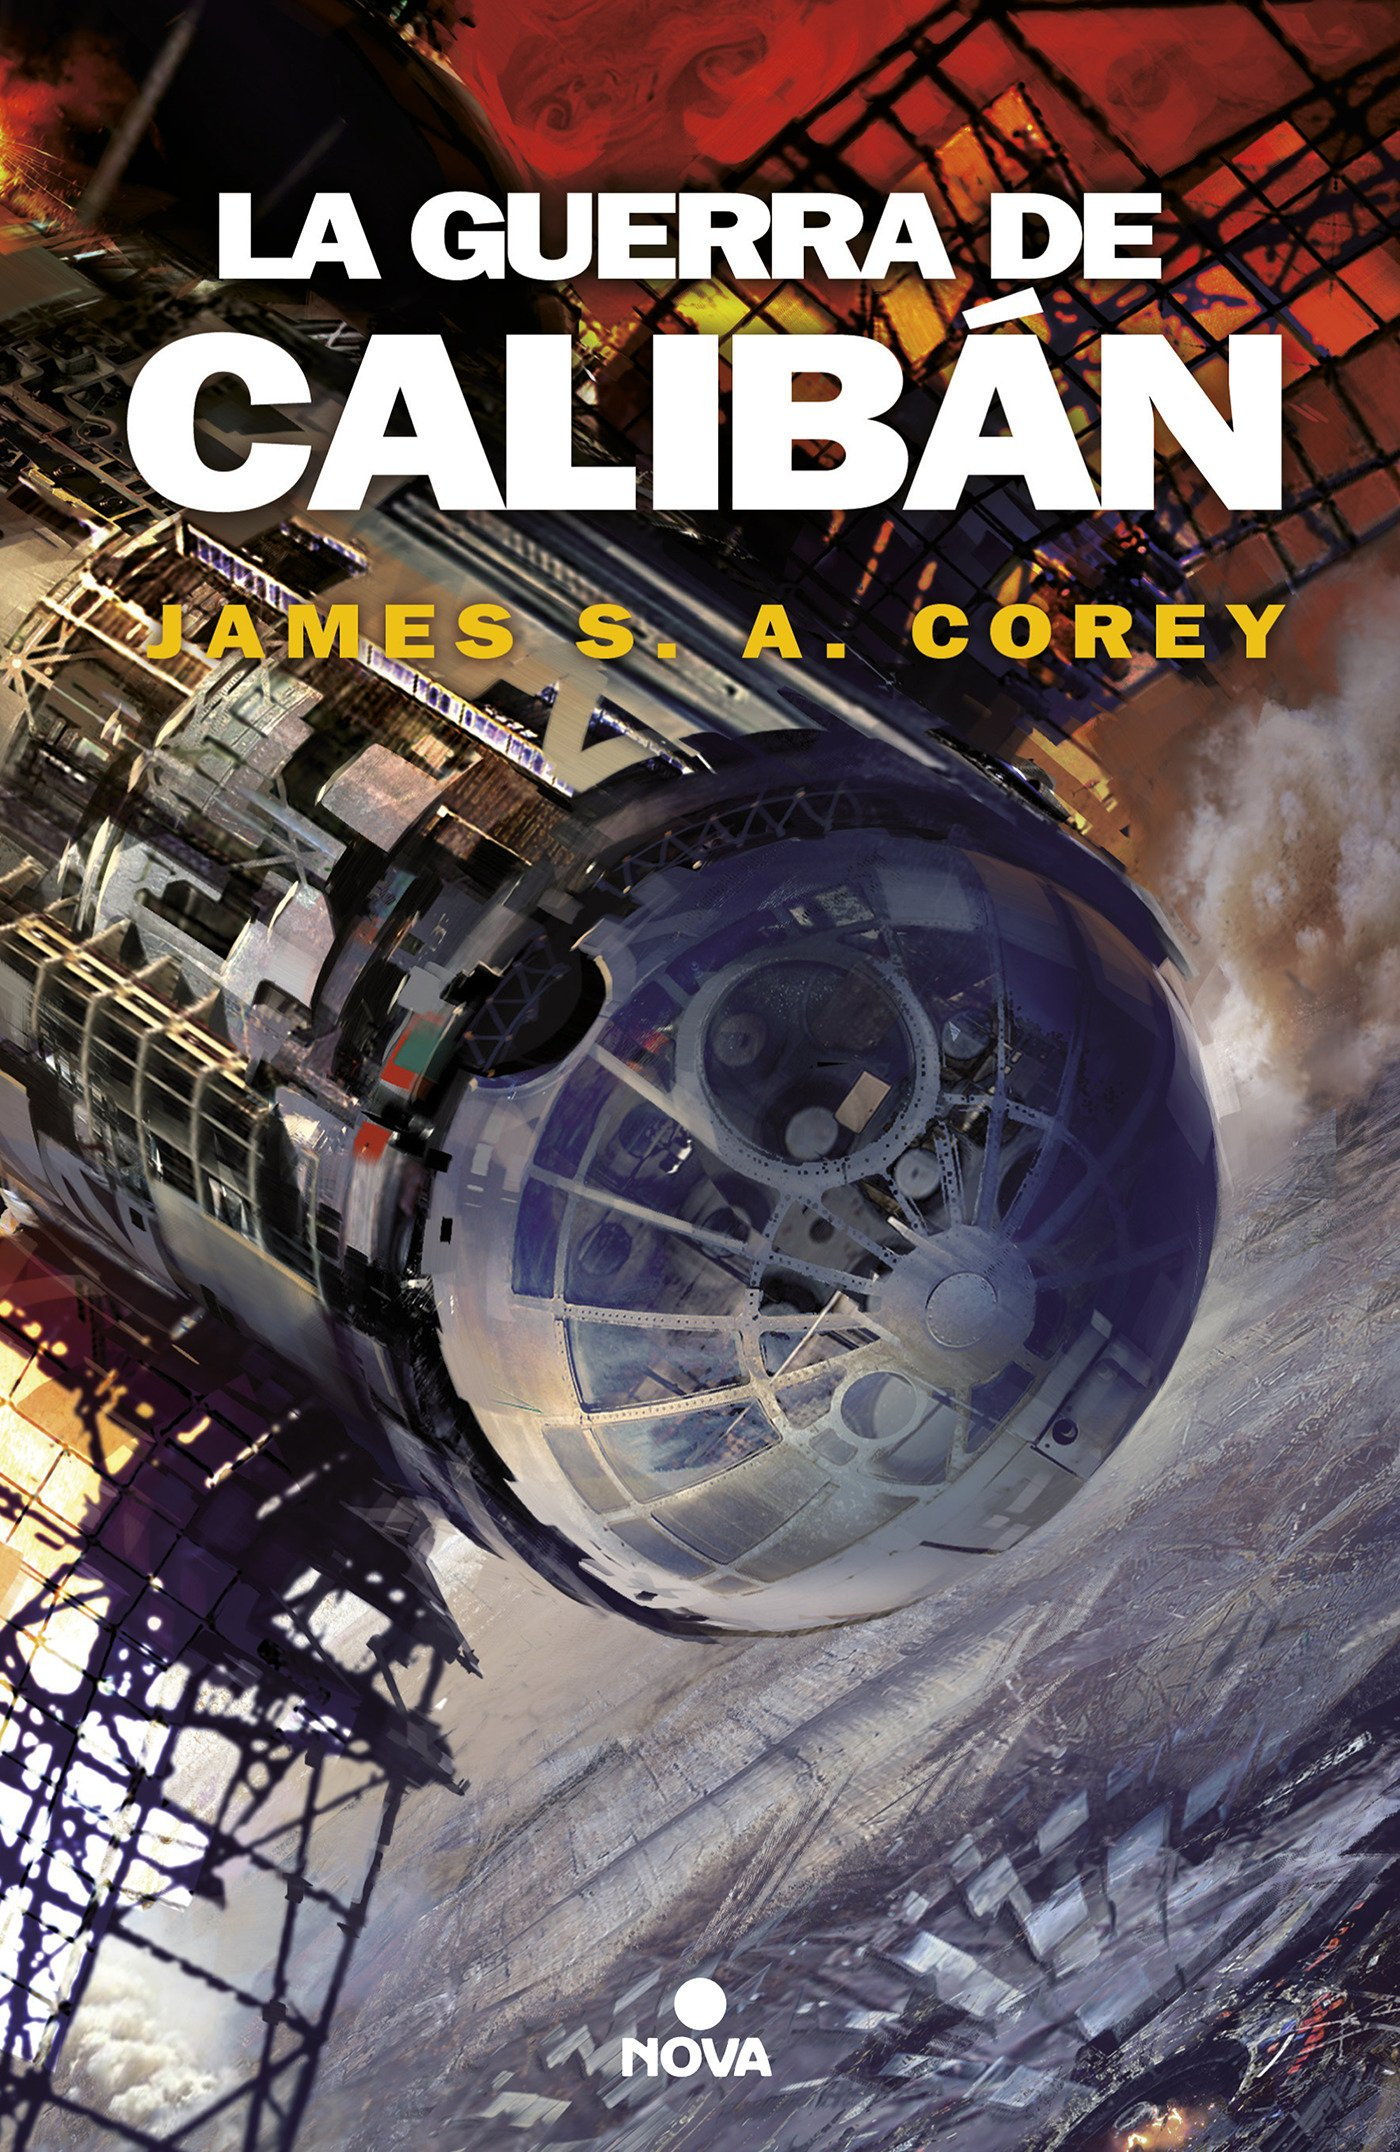 La guerra de Calibán (The Expanse 2) (Nova) Tapa blanda – 4 oct 2017 James S.A. Corey 8466660887 Science fiction. Science Fiction - Space Opera